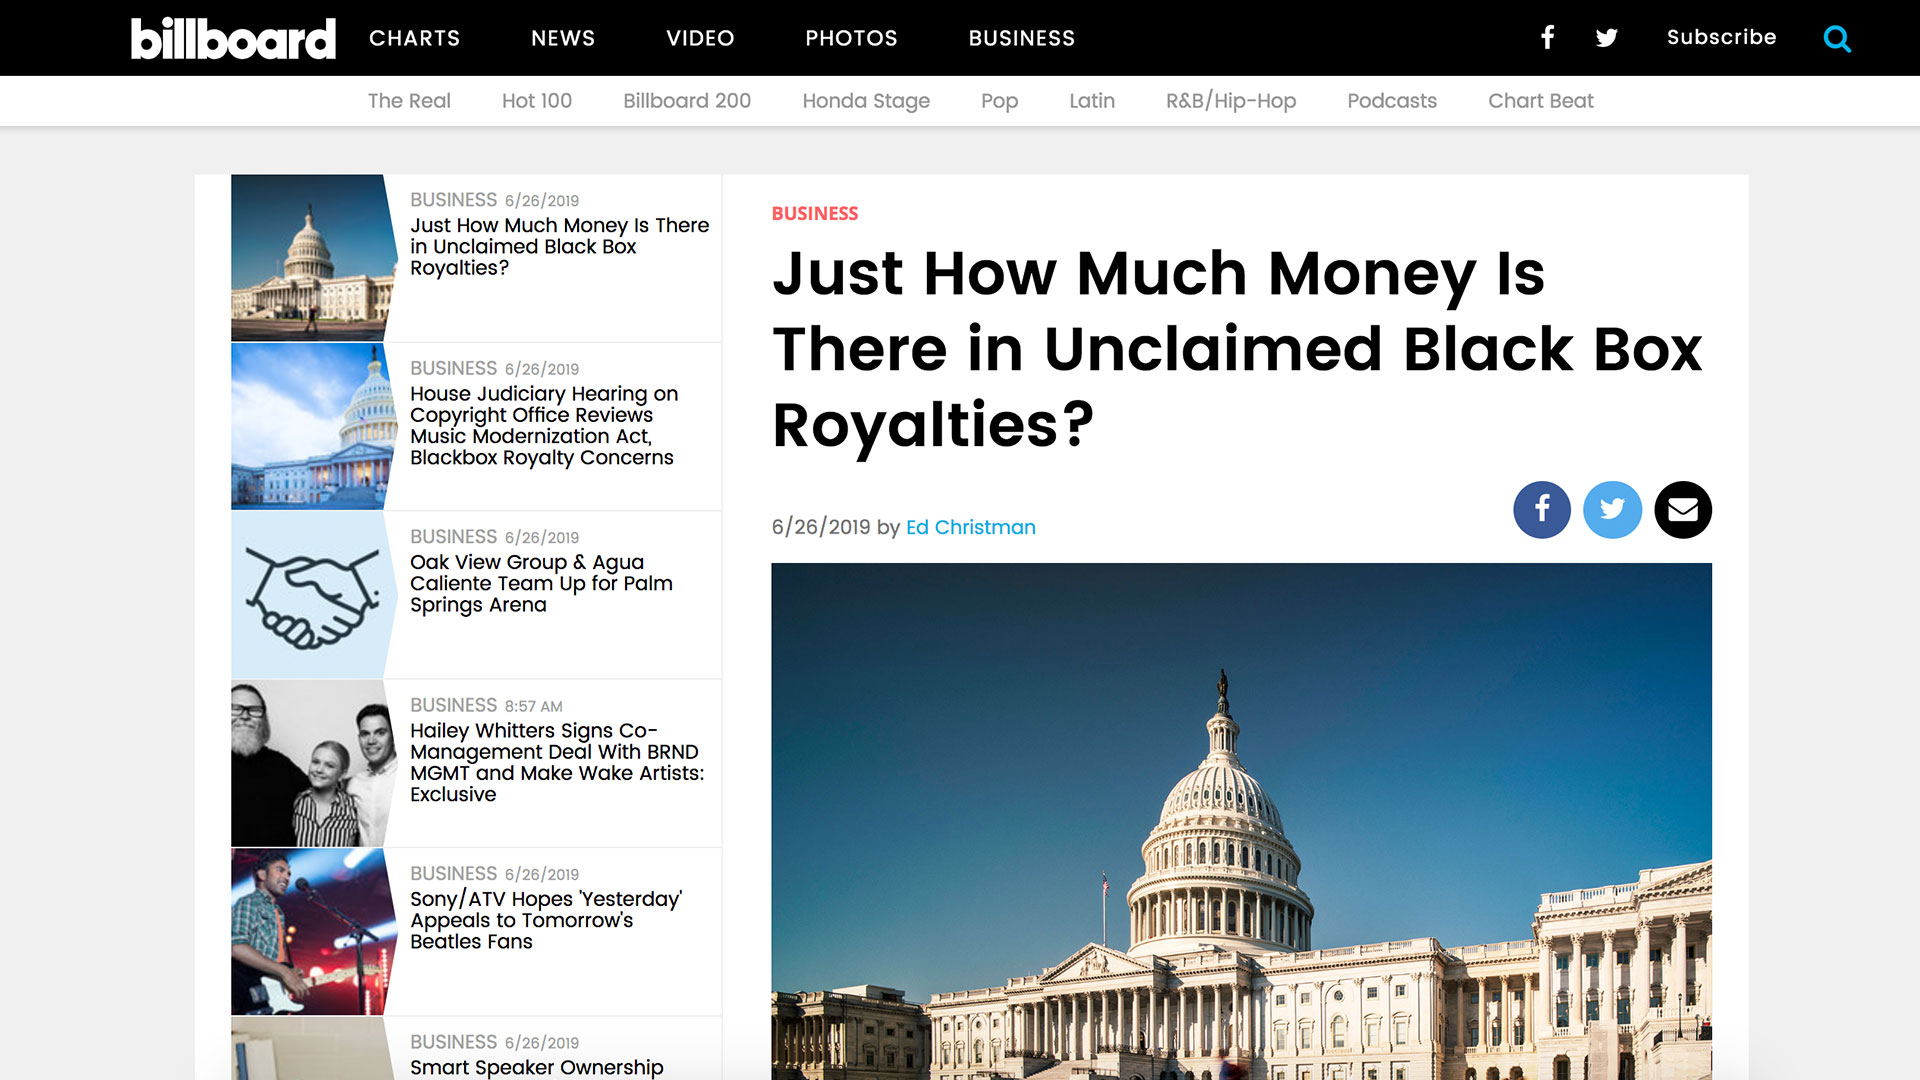 Fairness Rocks News Just How Much Money Is There in Unclaimed Black Box Royalties?